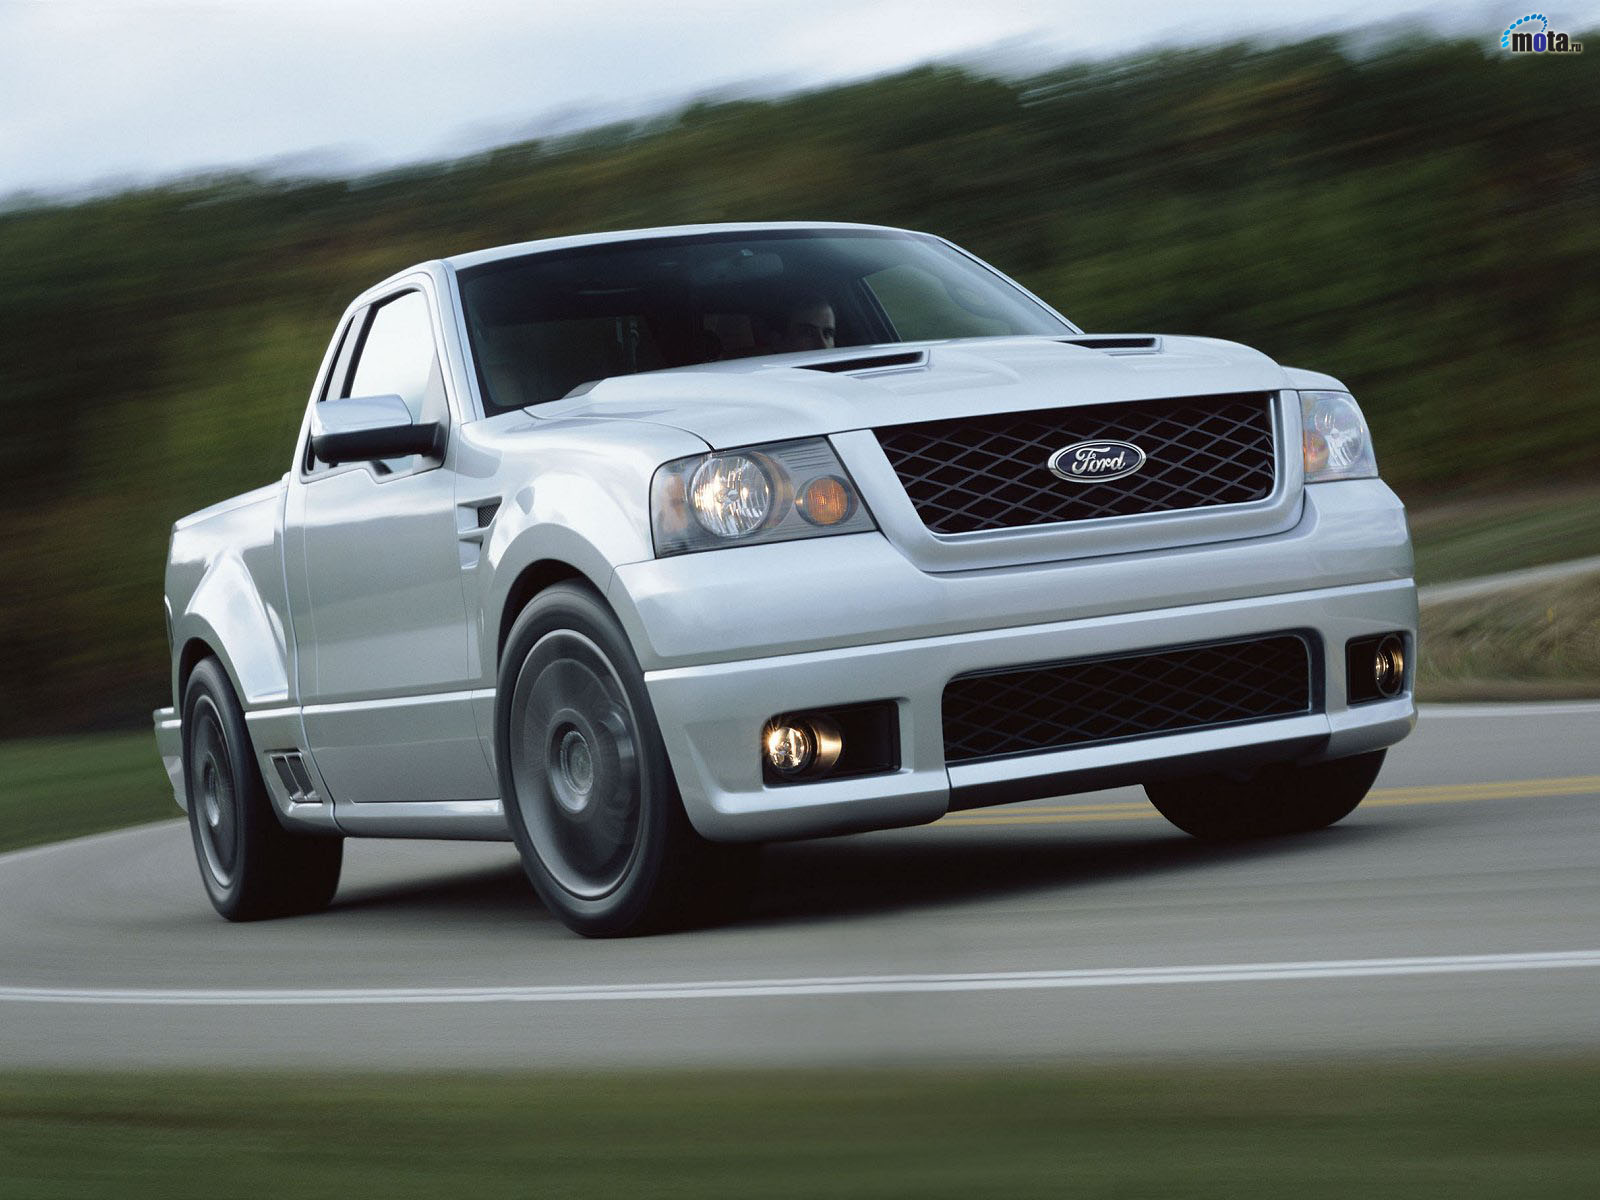 Download Ford Pickups wallpaper Ford Pickup 7 1600x1200